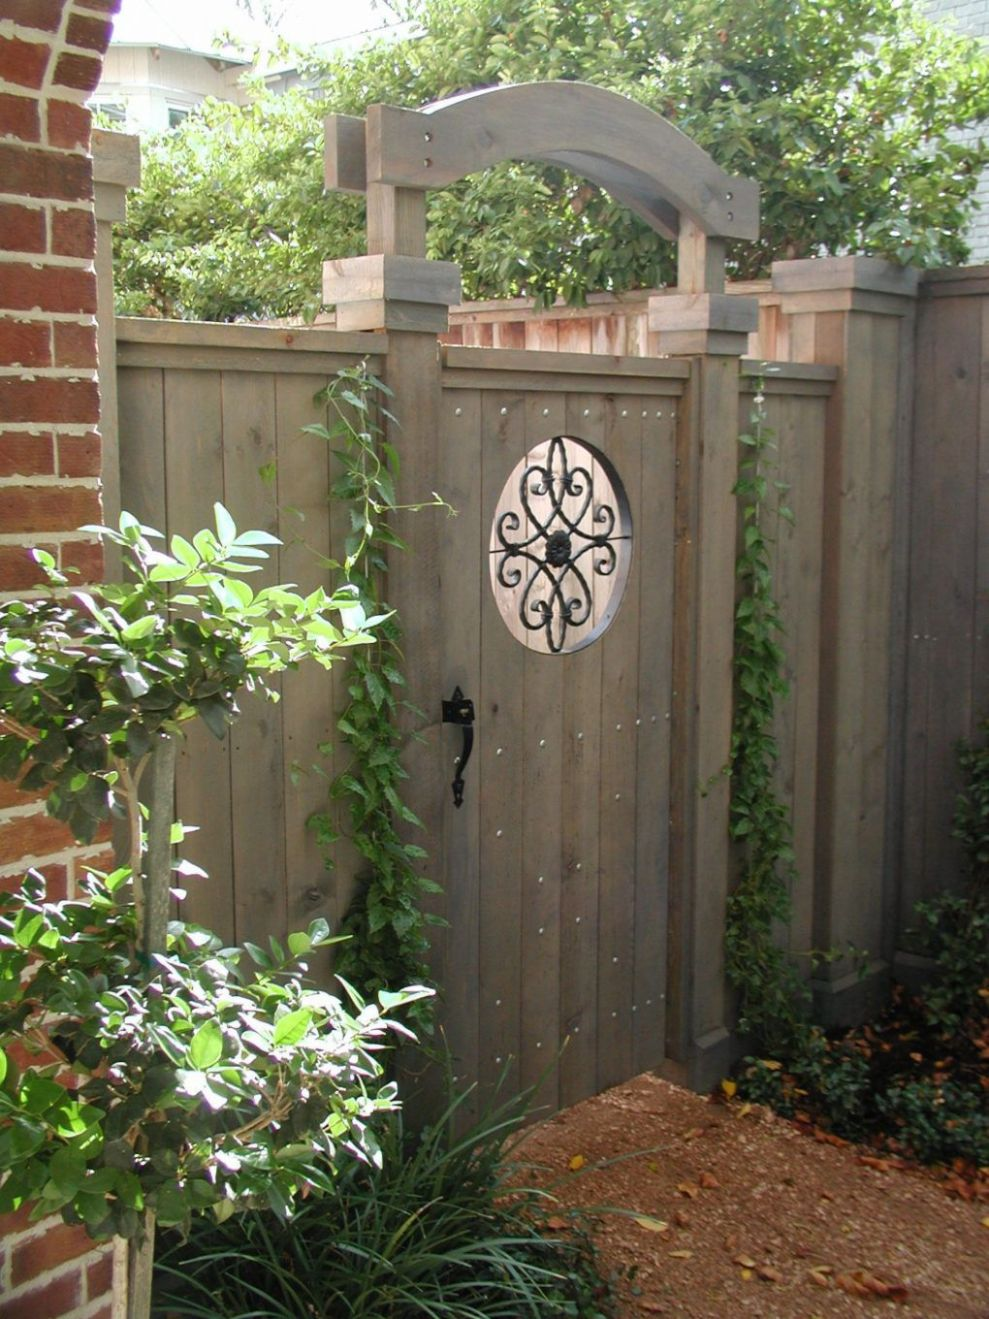 Astonishing Backyard Entrance Ideas (With images) | Garden gate ...